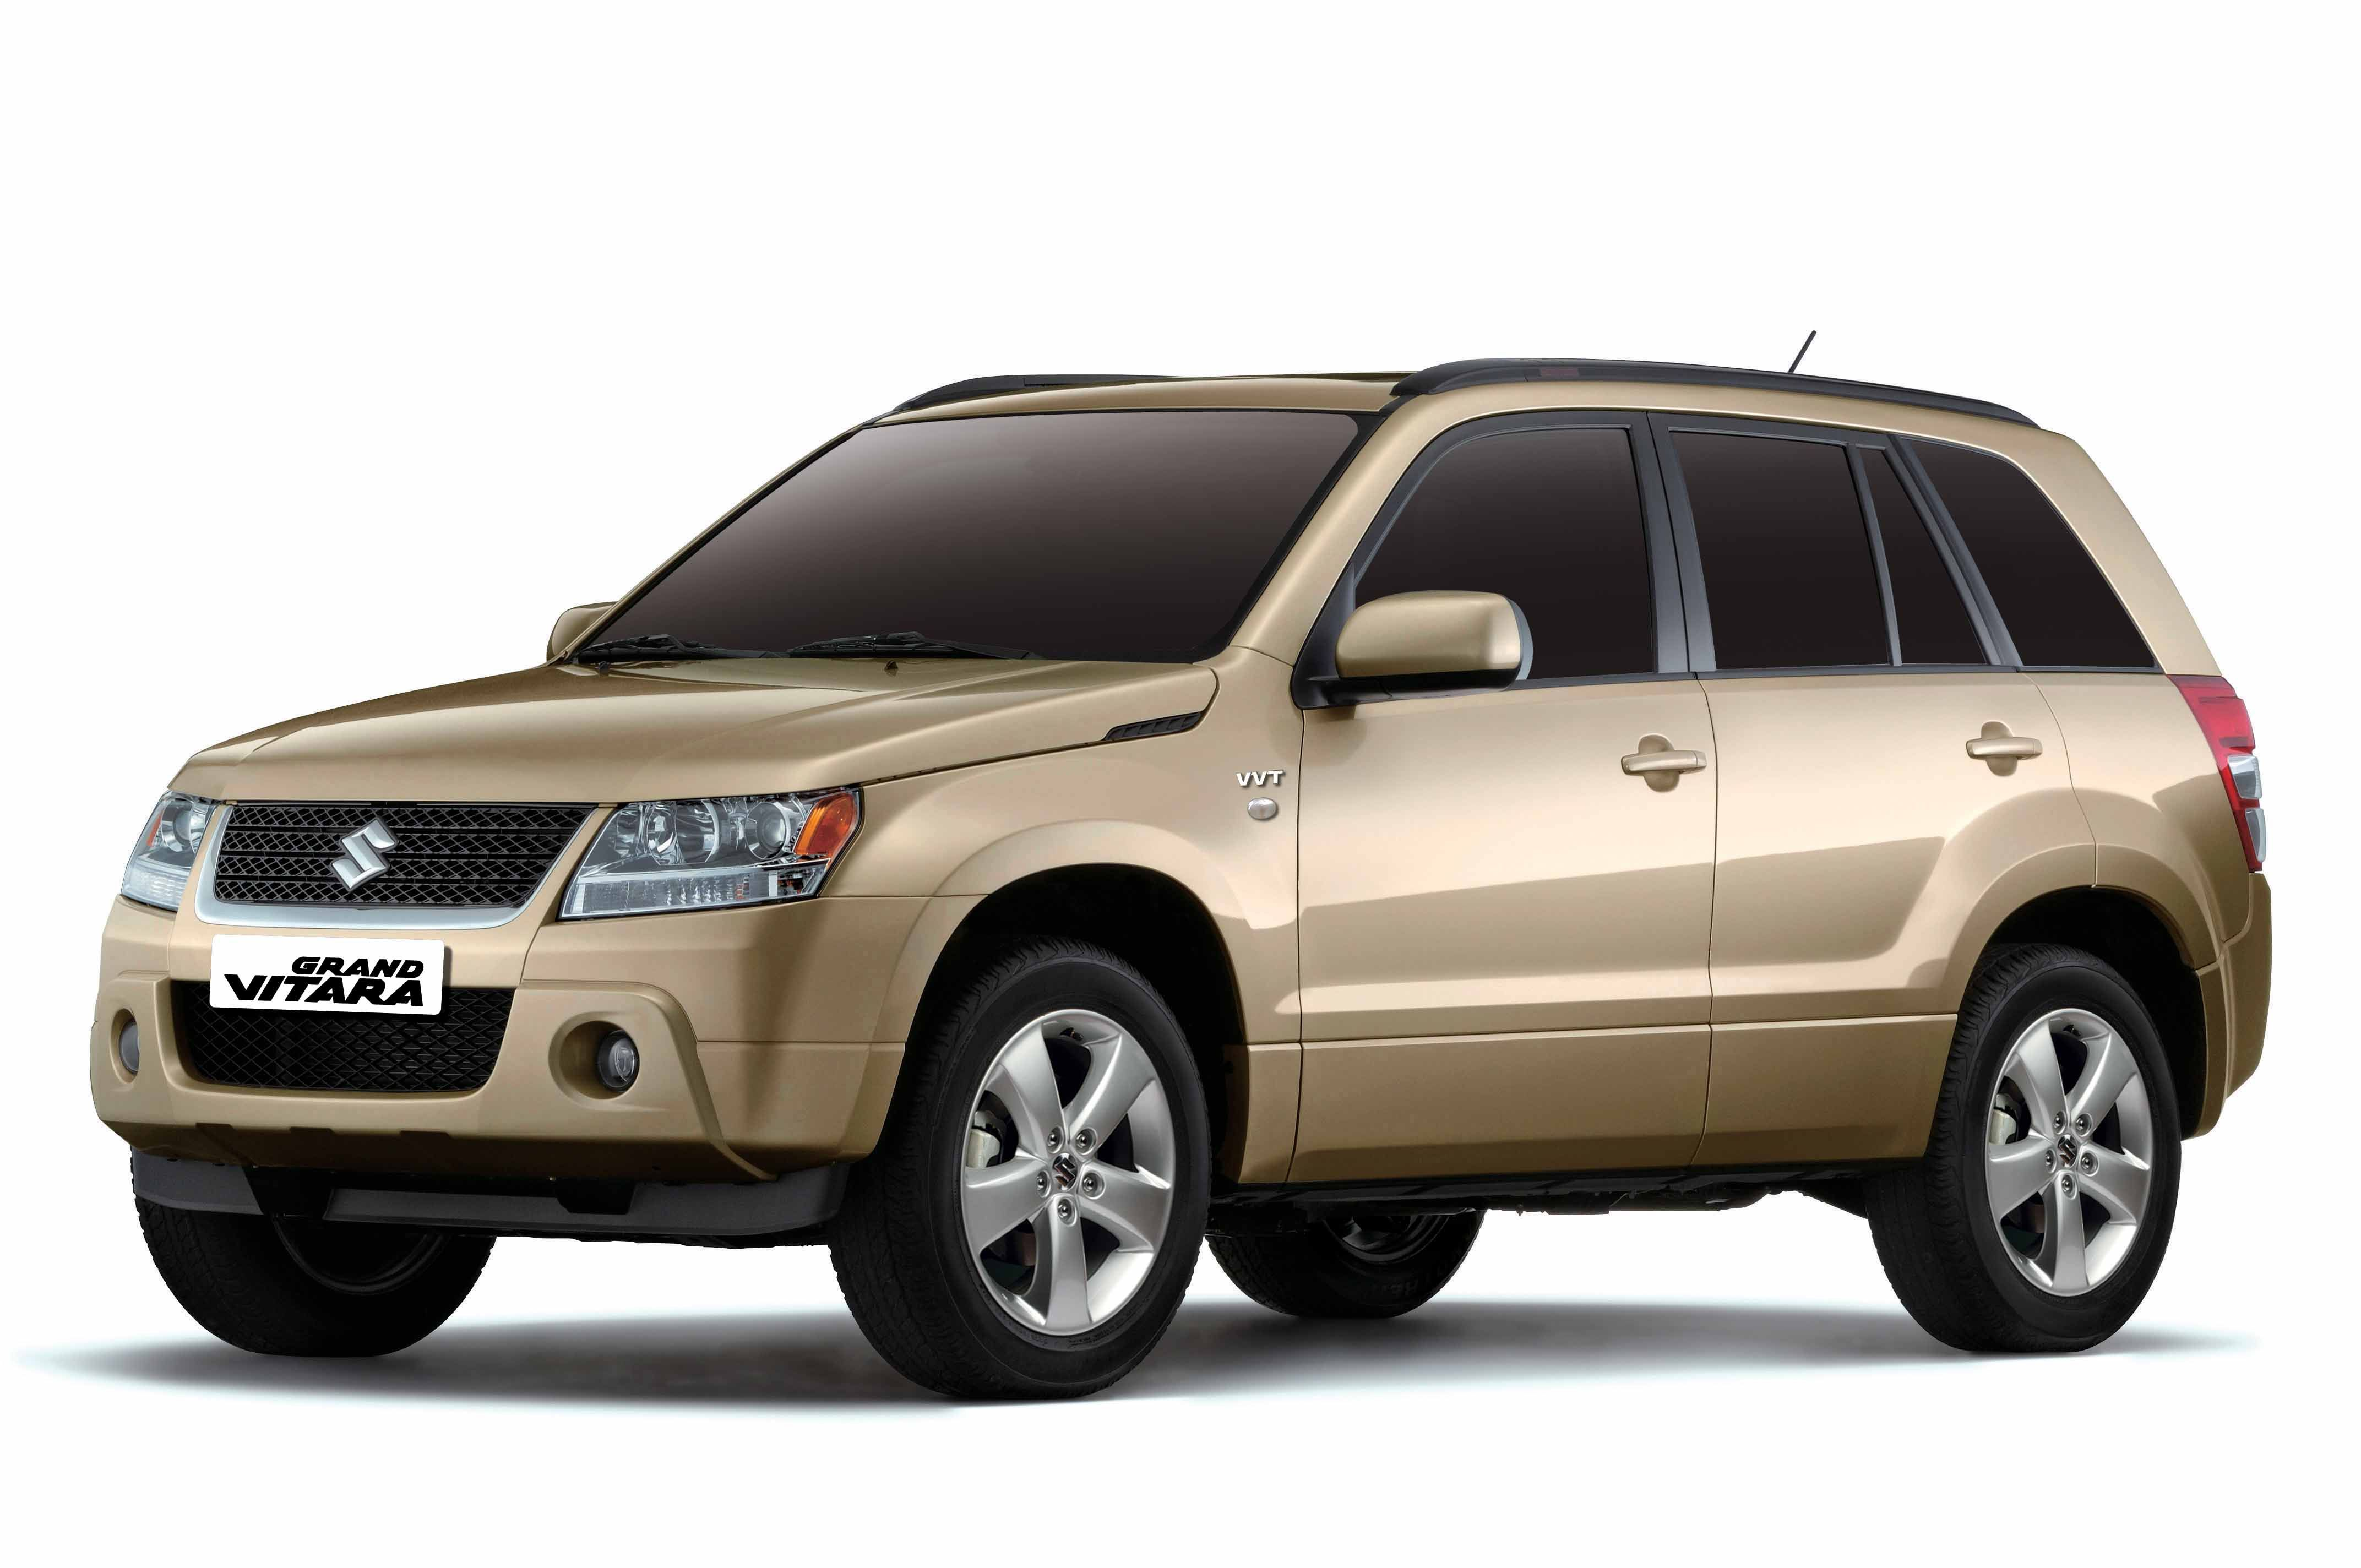 maruti suzuki launched the new advanced variant of its suv grand vitara in india the new model. Black Bedroom Furniture Sets. Home Design Ideas